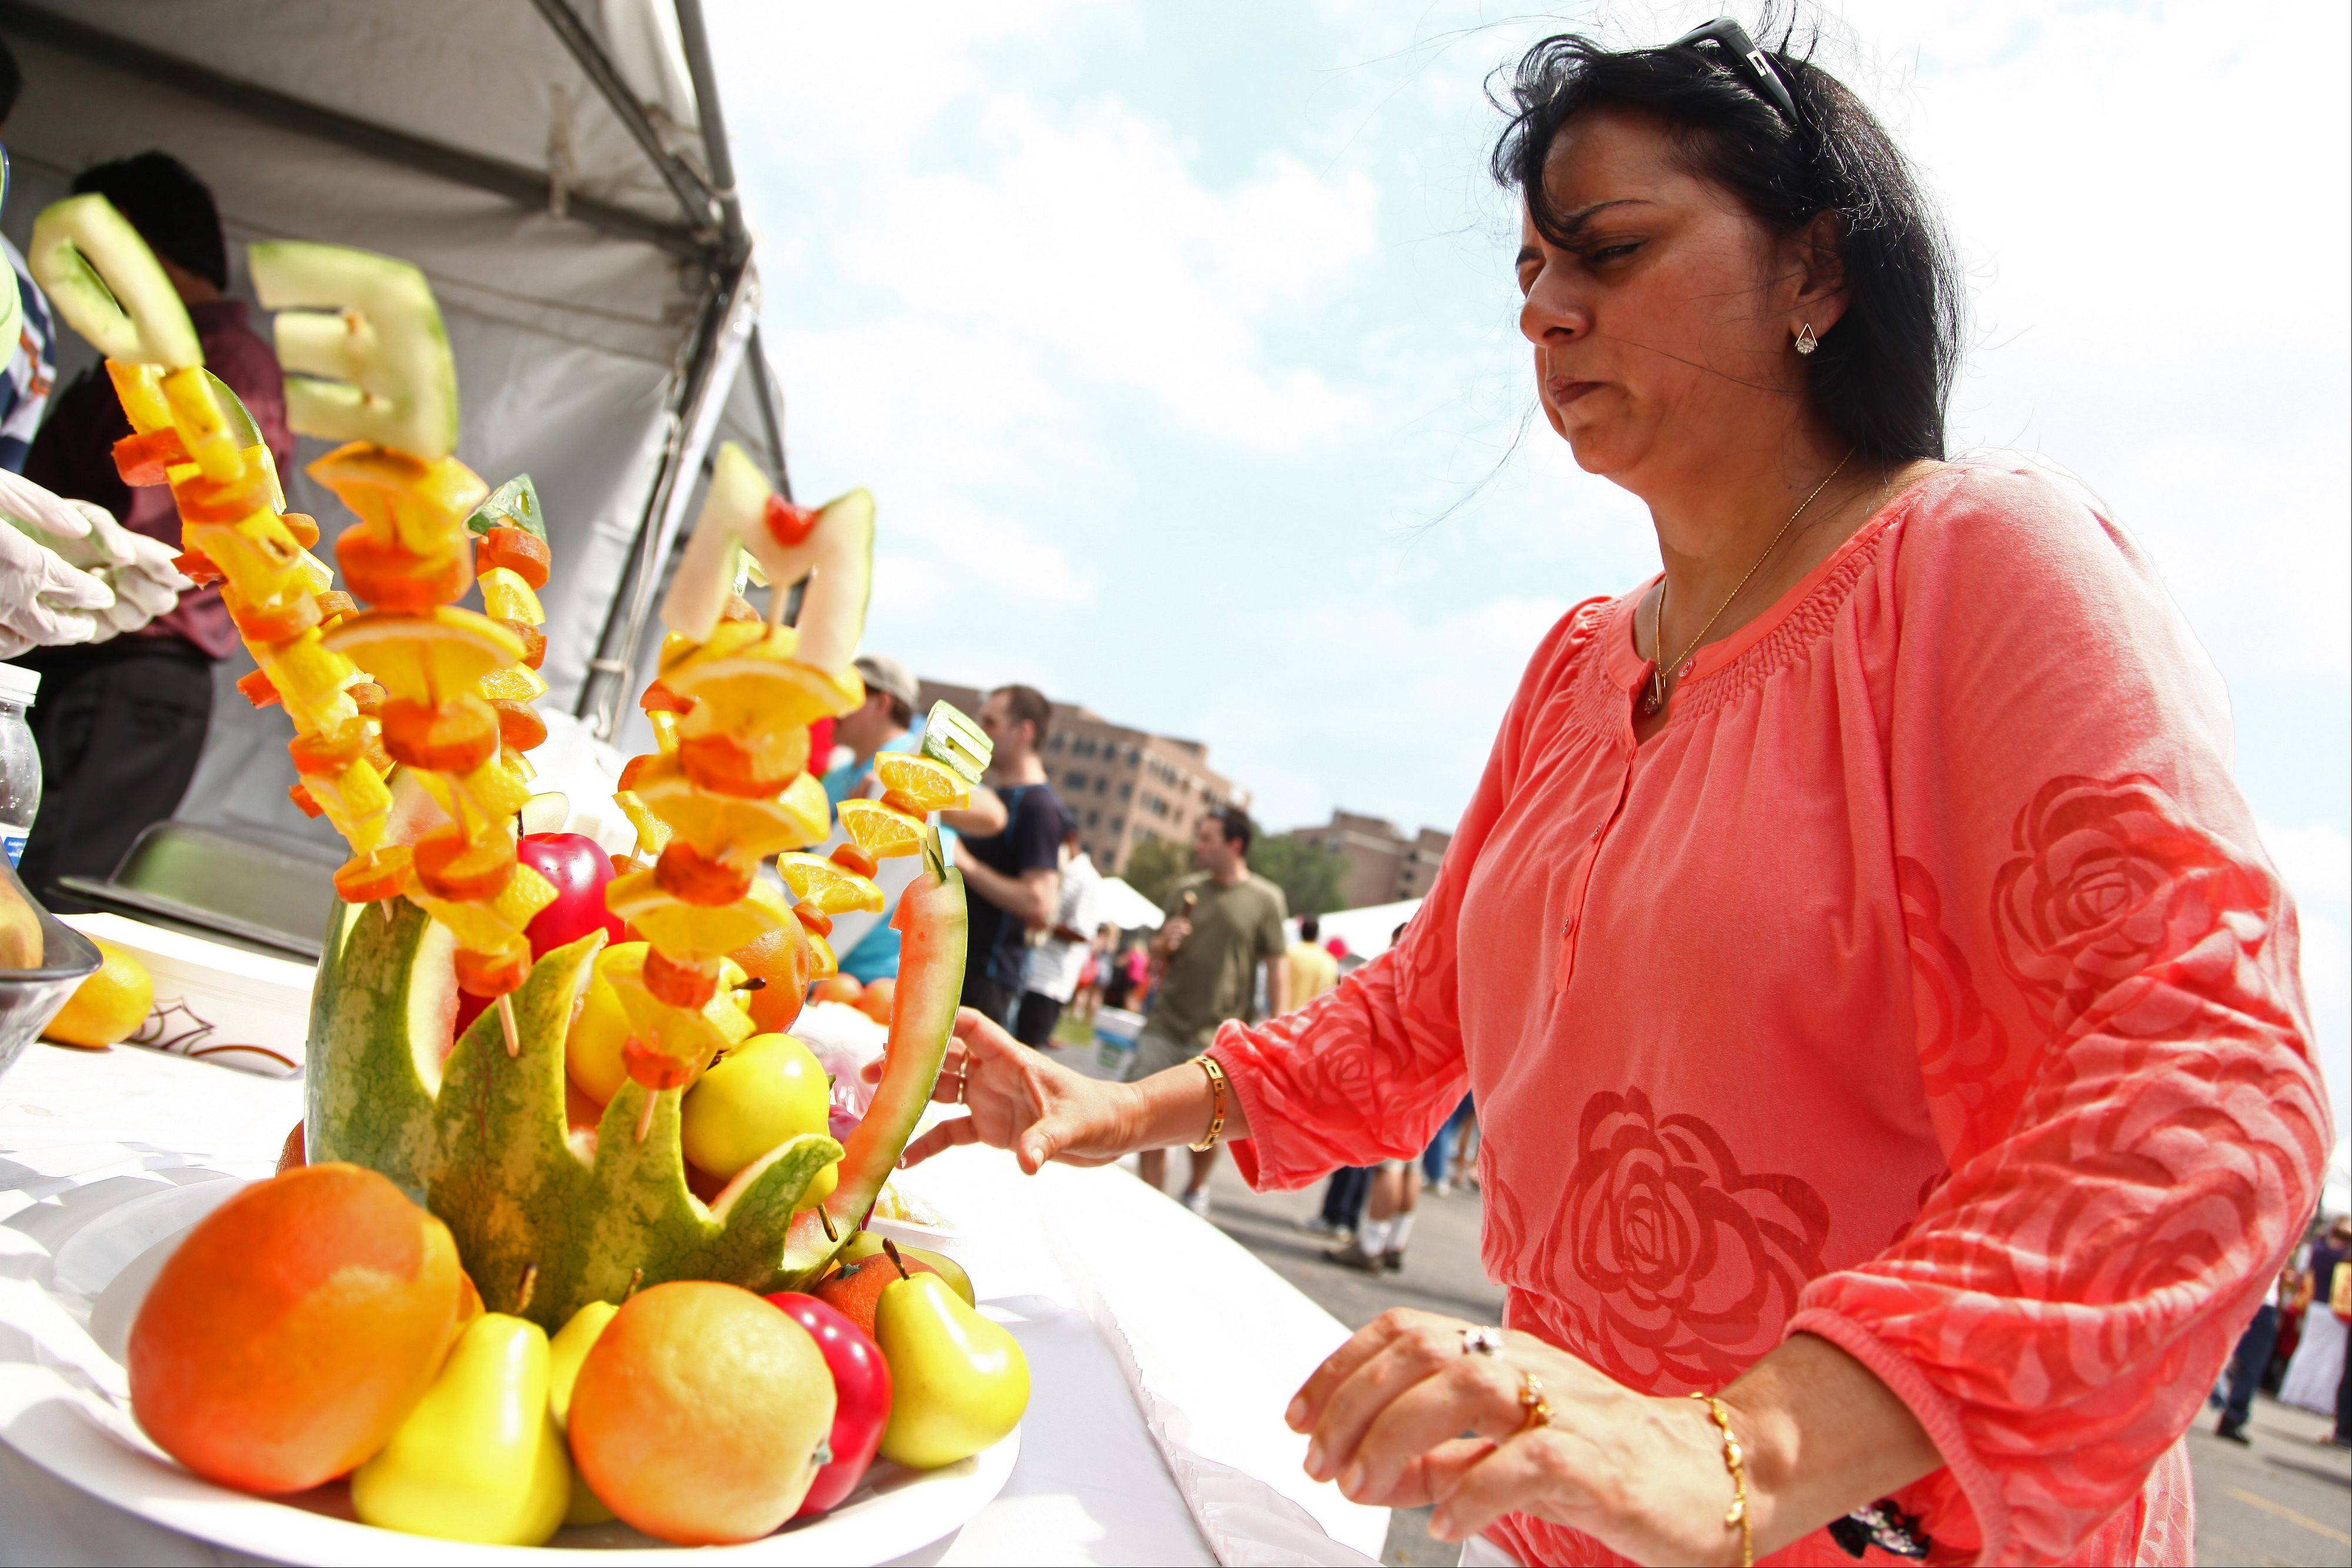 Fruit sculptures, falafel and vegetarian dishes from India, Italy, Mexico and other countries will be on display and for sale Saturday and Sunday at the eighth annual Veggie Fest hosted by Science of Spirituality Meditation Center, 4S175 Naperville Road in Naperville.